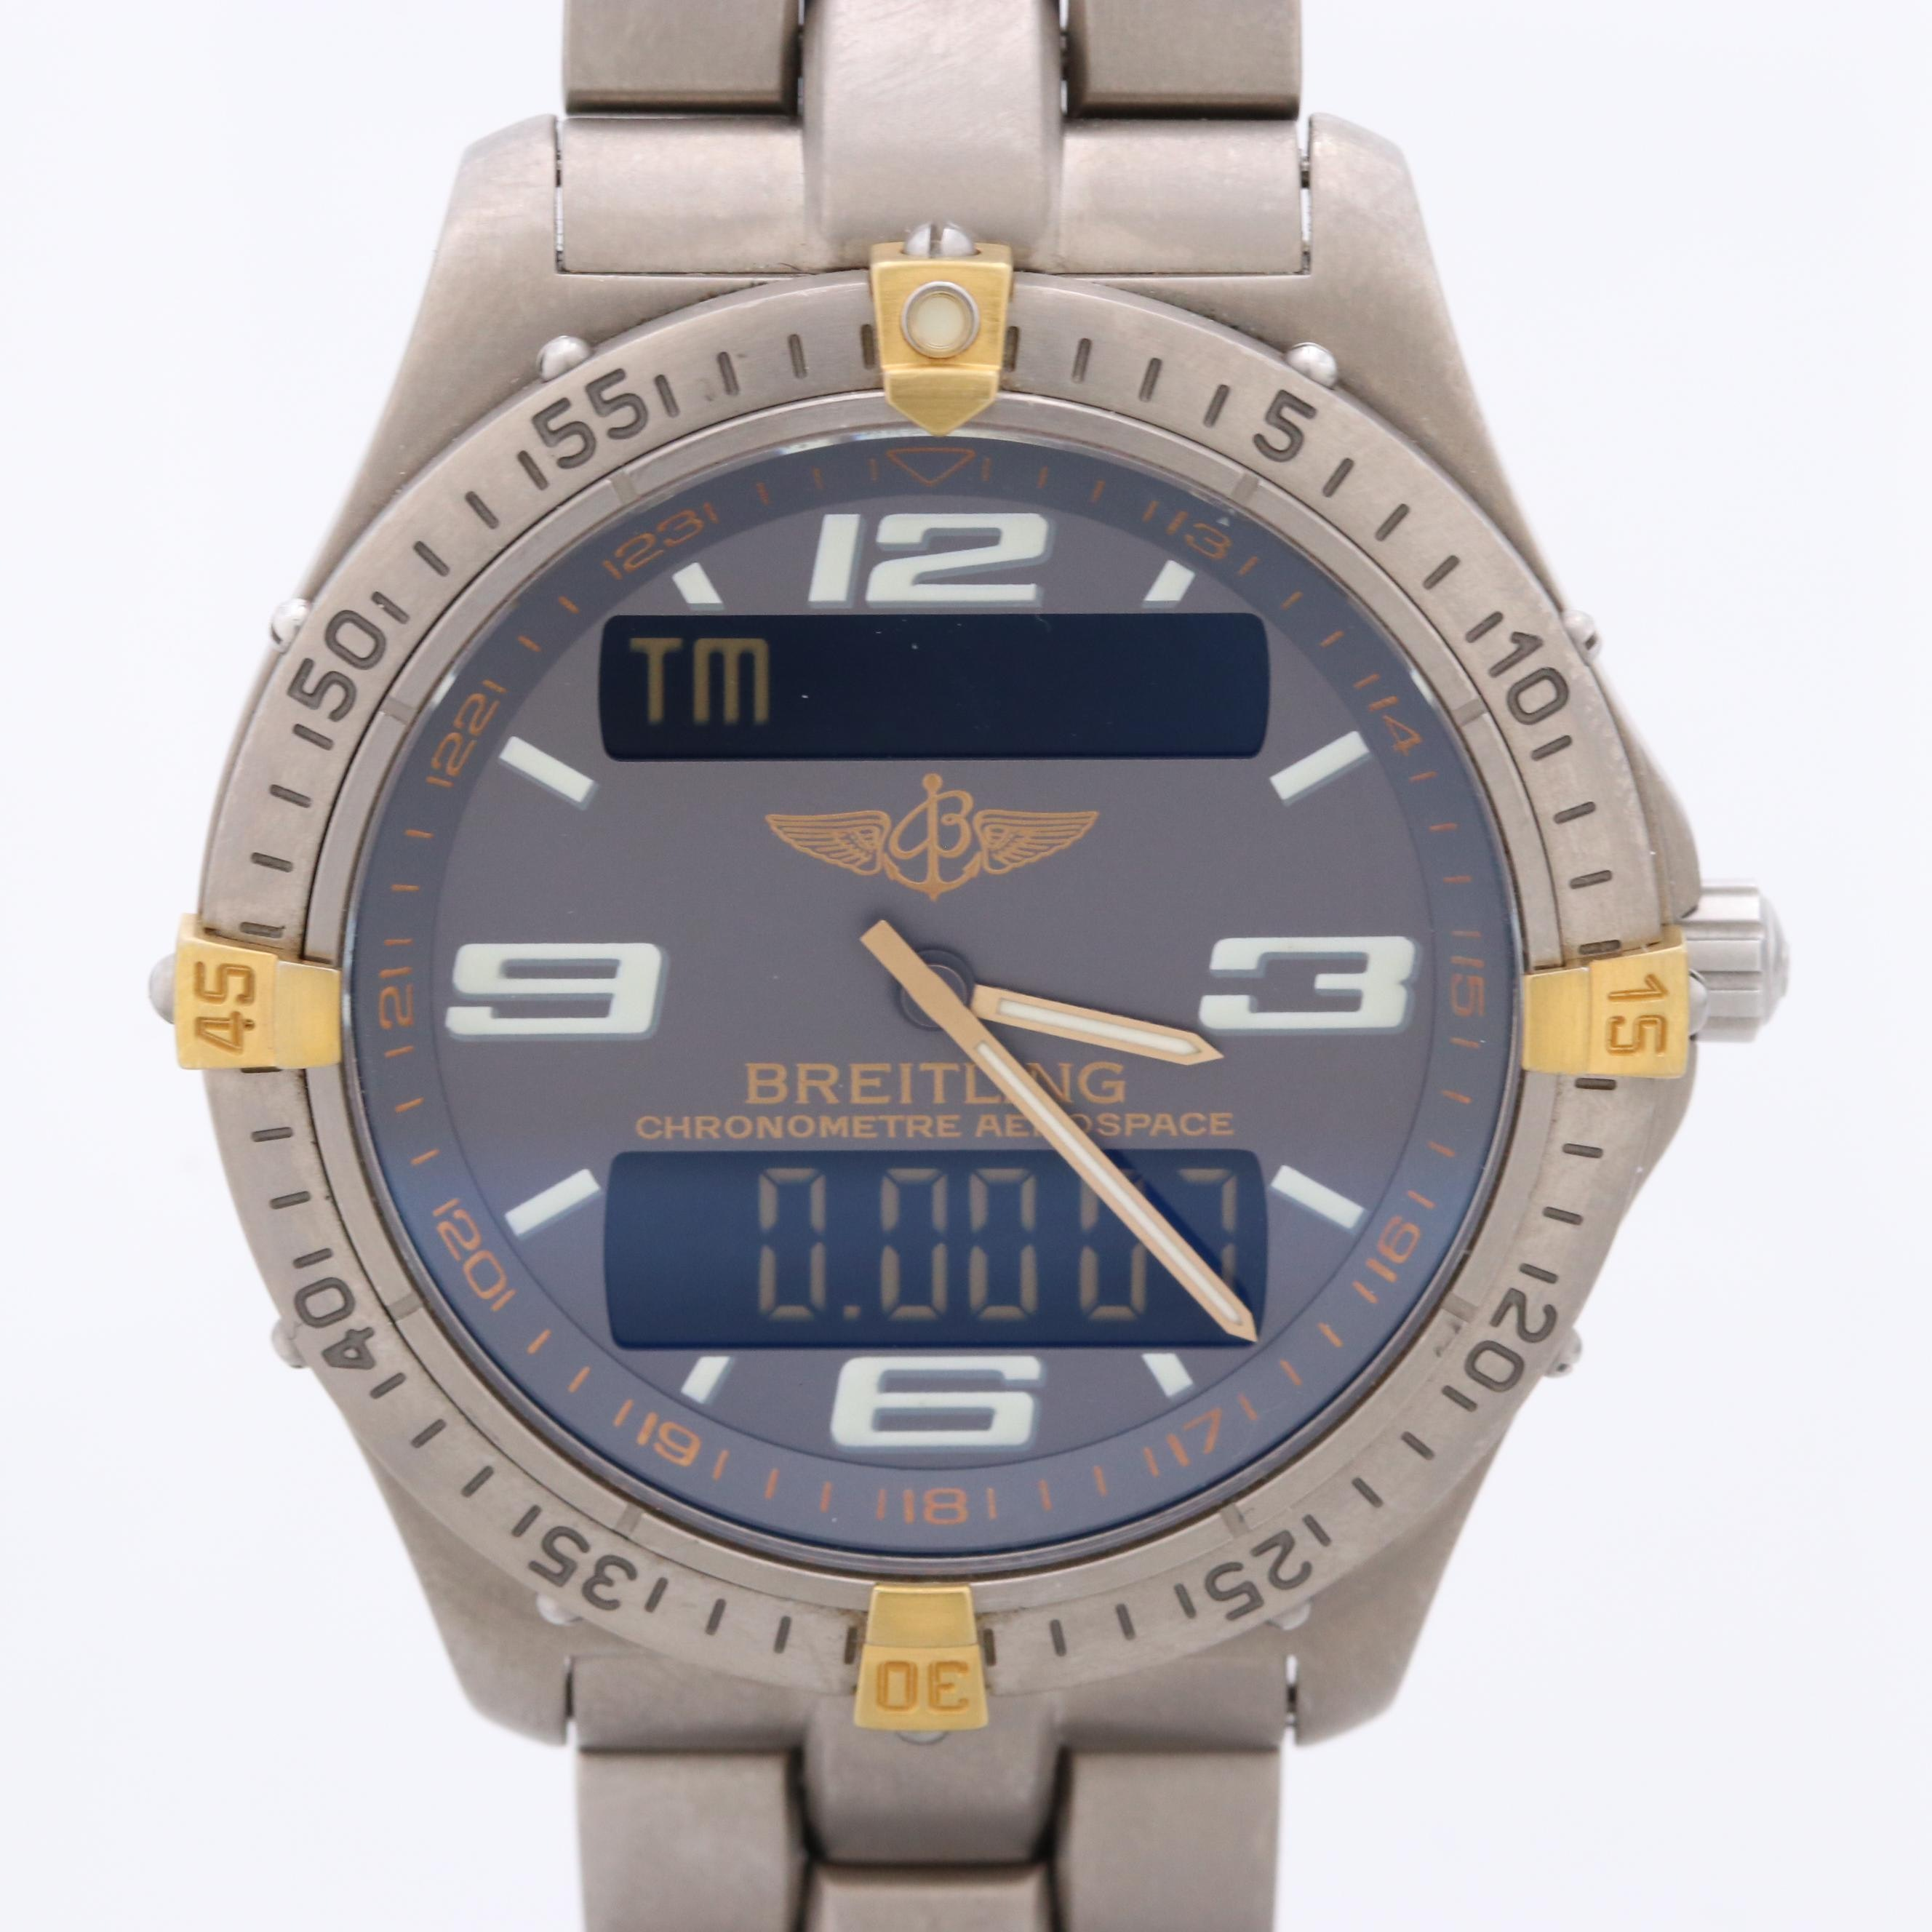 Breitling Aerospace Titanium Quartz Wristwatch